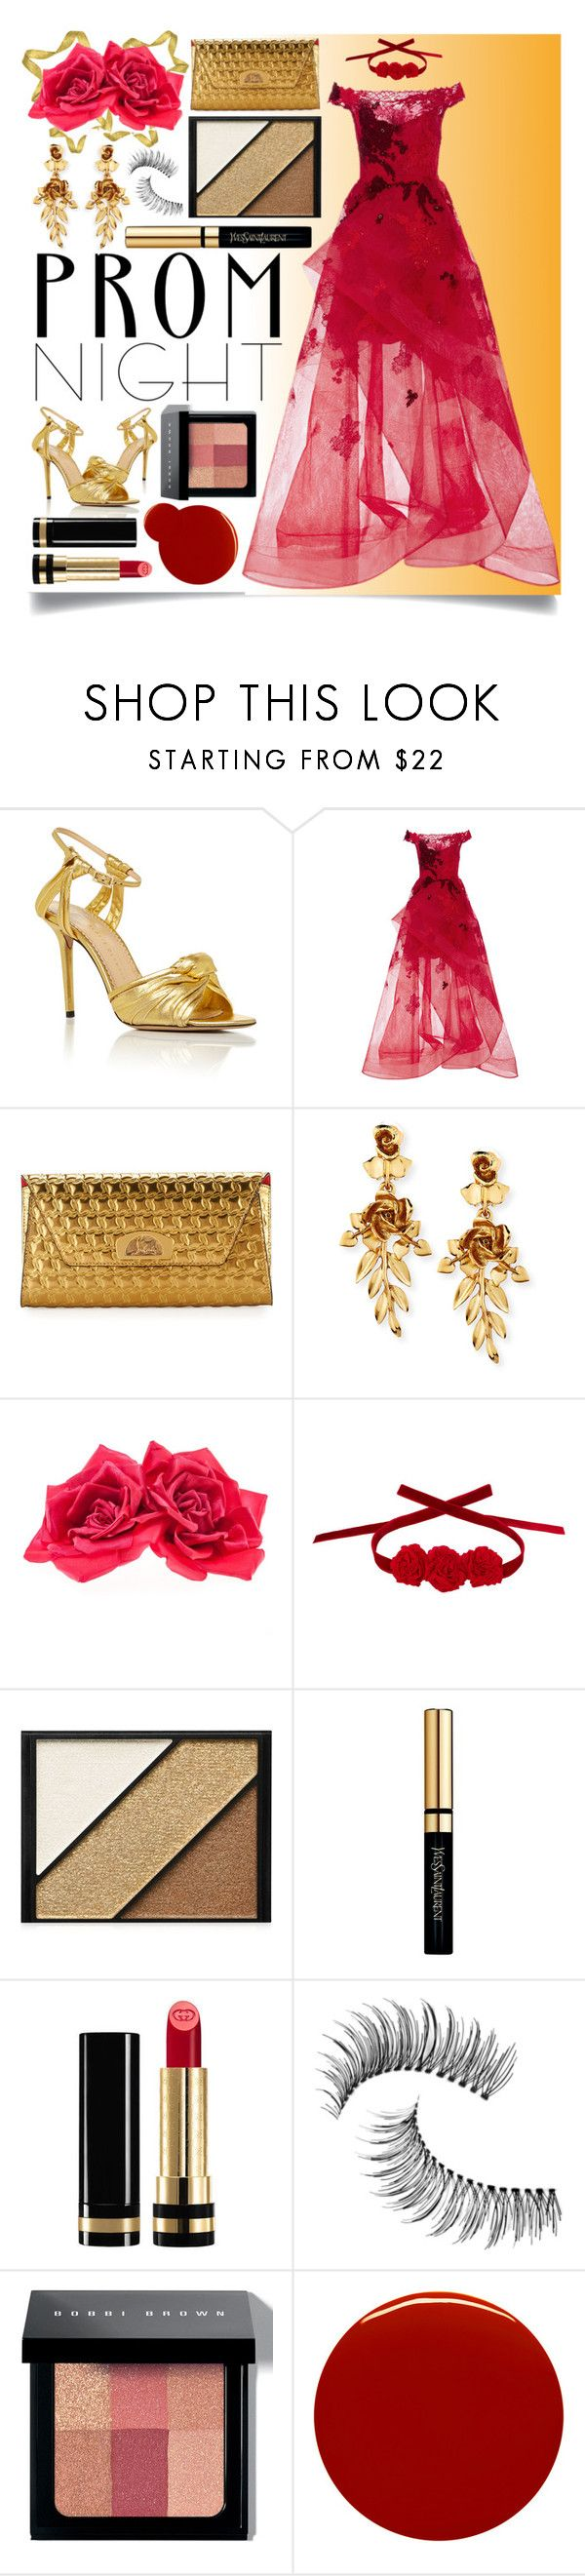 """Prom Night"" by ittie-kittie ❤ liked on Polyvore featuring Charlotte Olympia, Monique Lhuillier, Christian Louboutin, Oscar de la Renta, Johnny Loves Rosie, Vjera Vilicnik, Elizabeth Arden, Yves Saint Laurent, Gucci and Trish McEvoy"